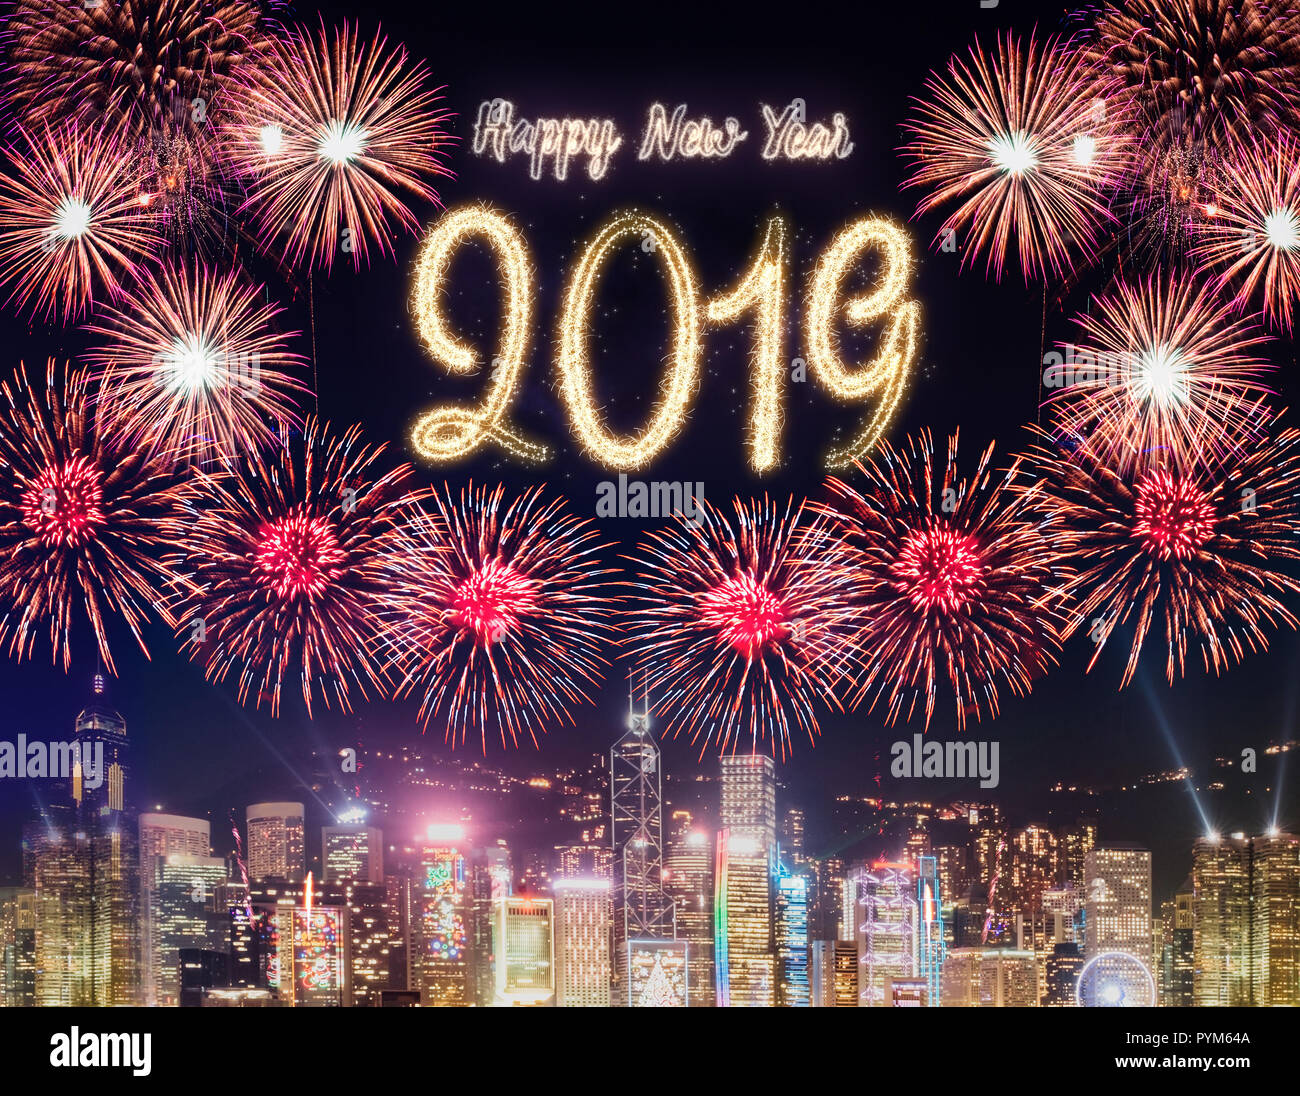 Happy New Year Images 2019 97